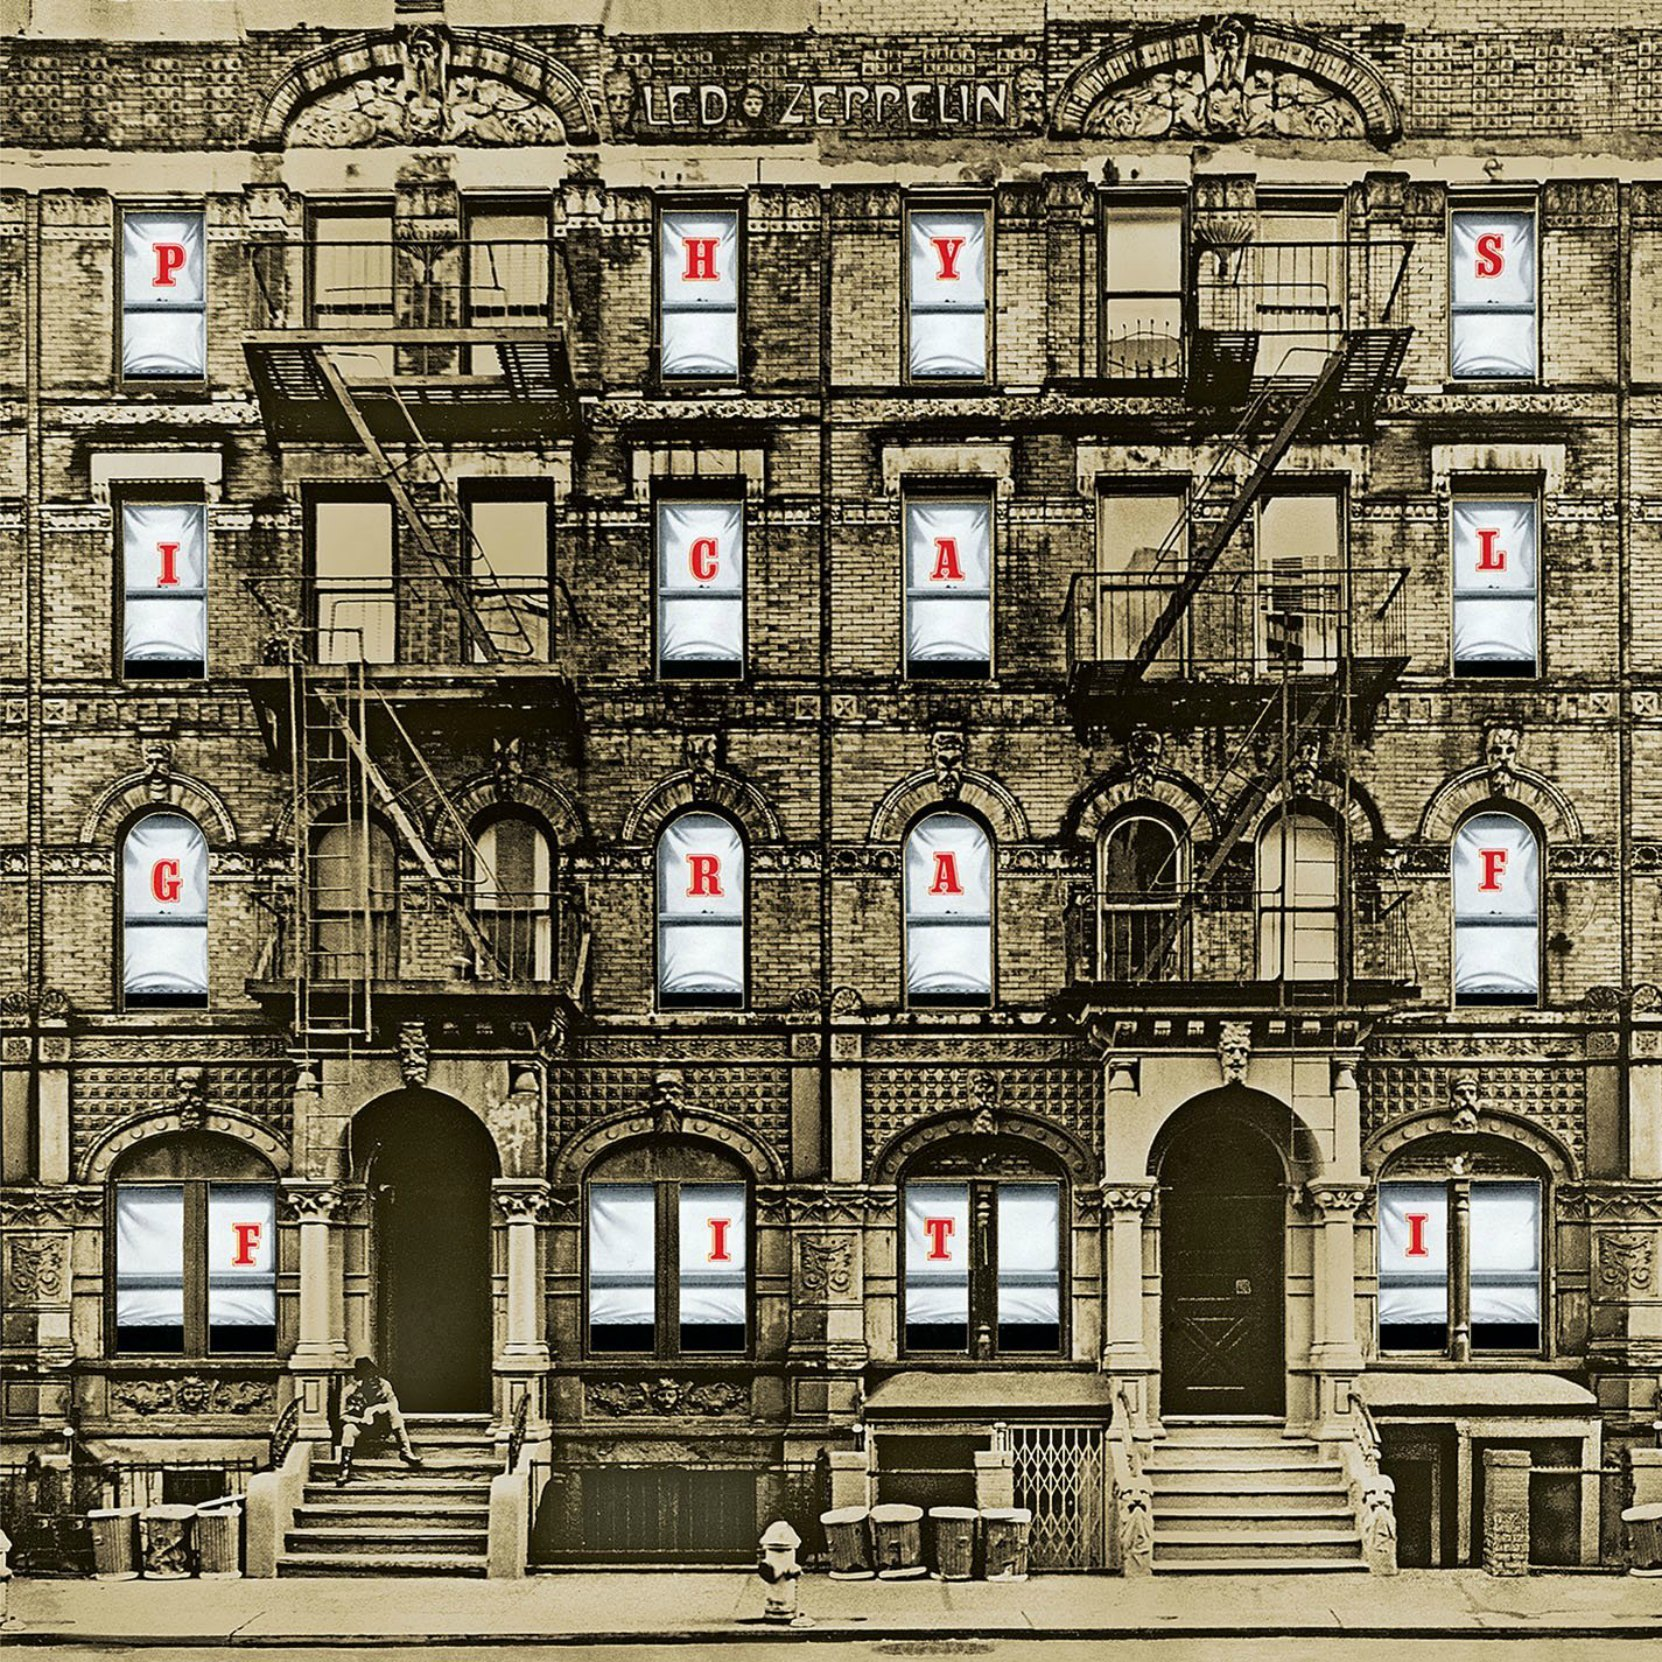 Album cover - Led Zeppelin, Physical Graffiti, released 1975